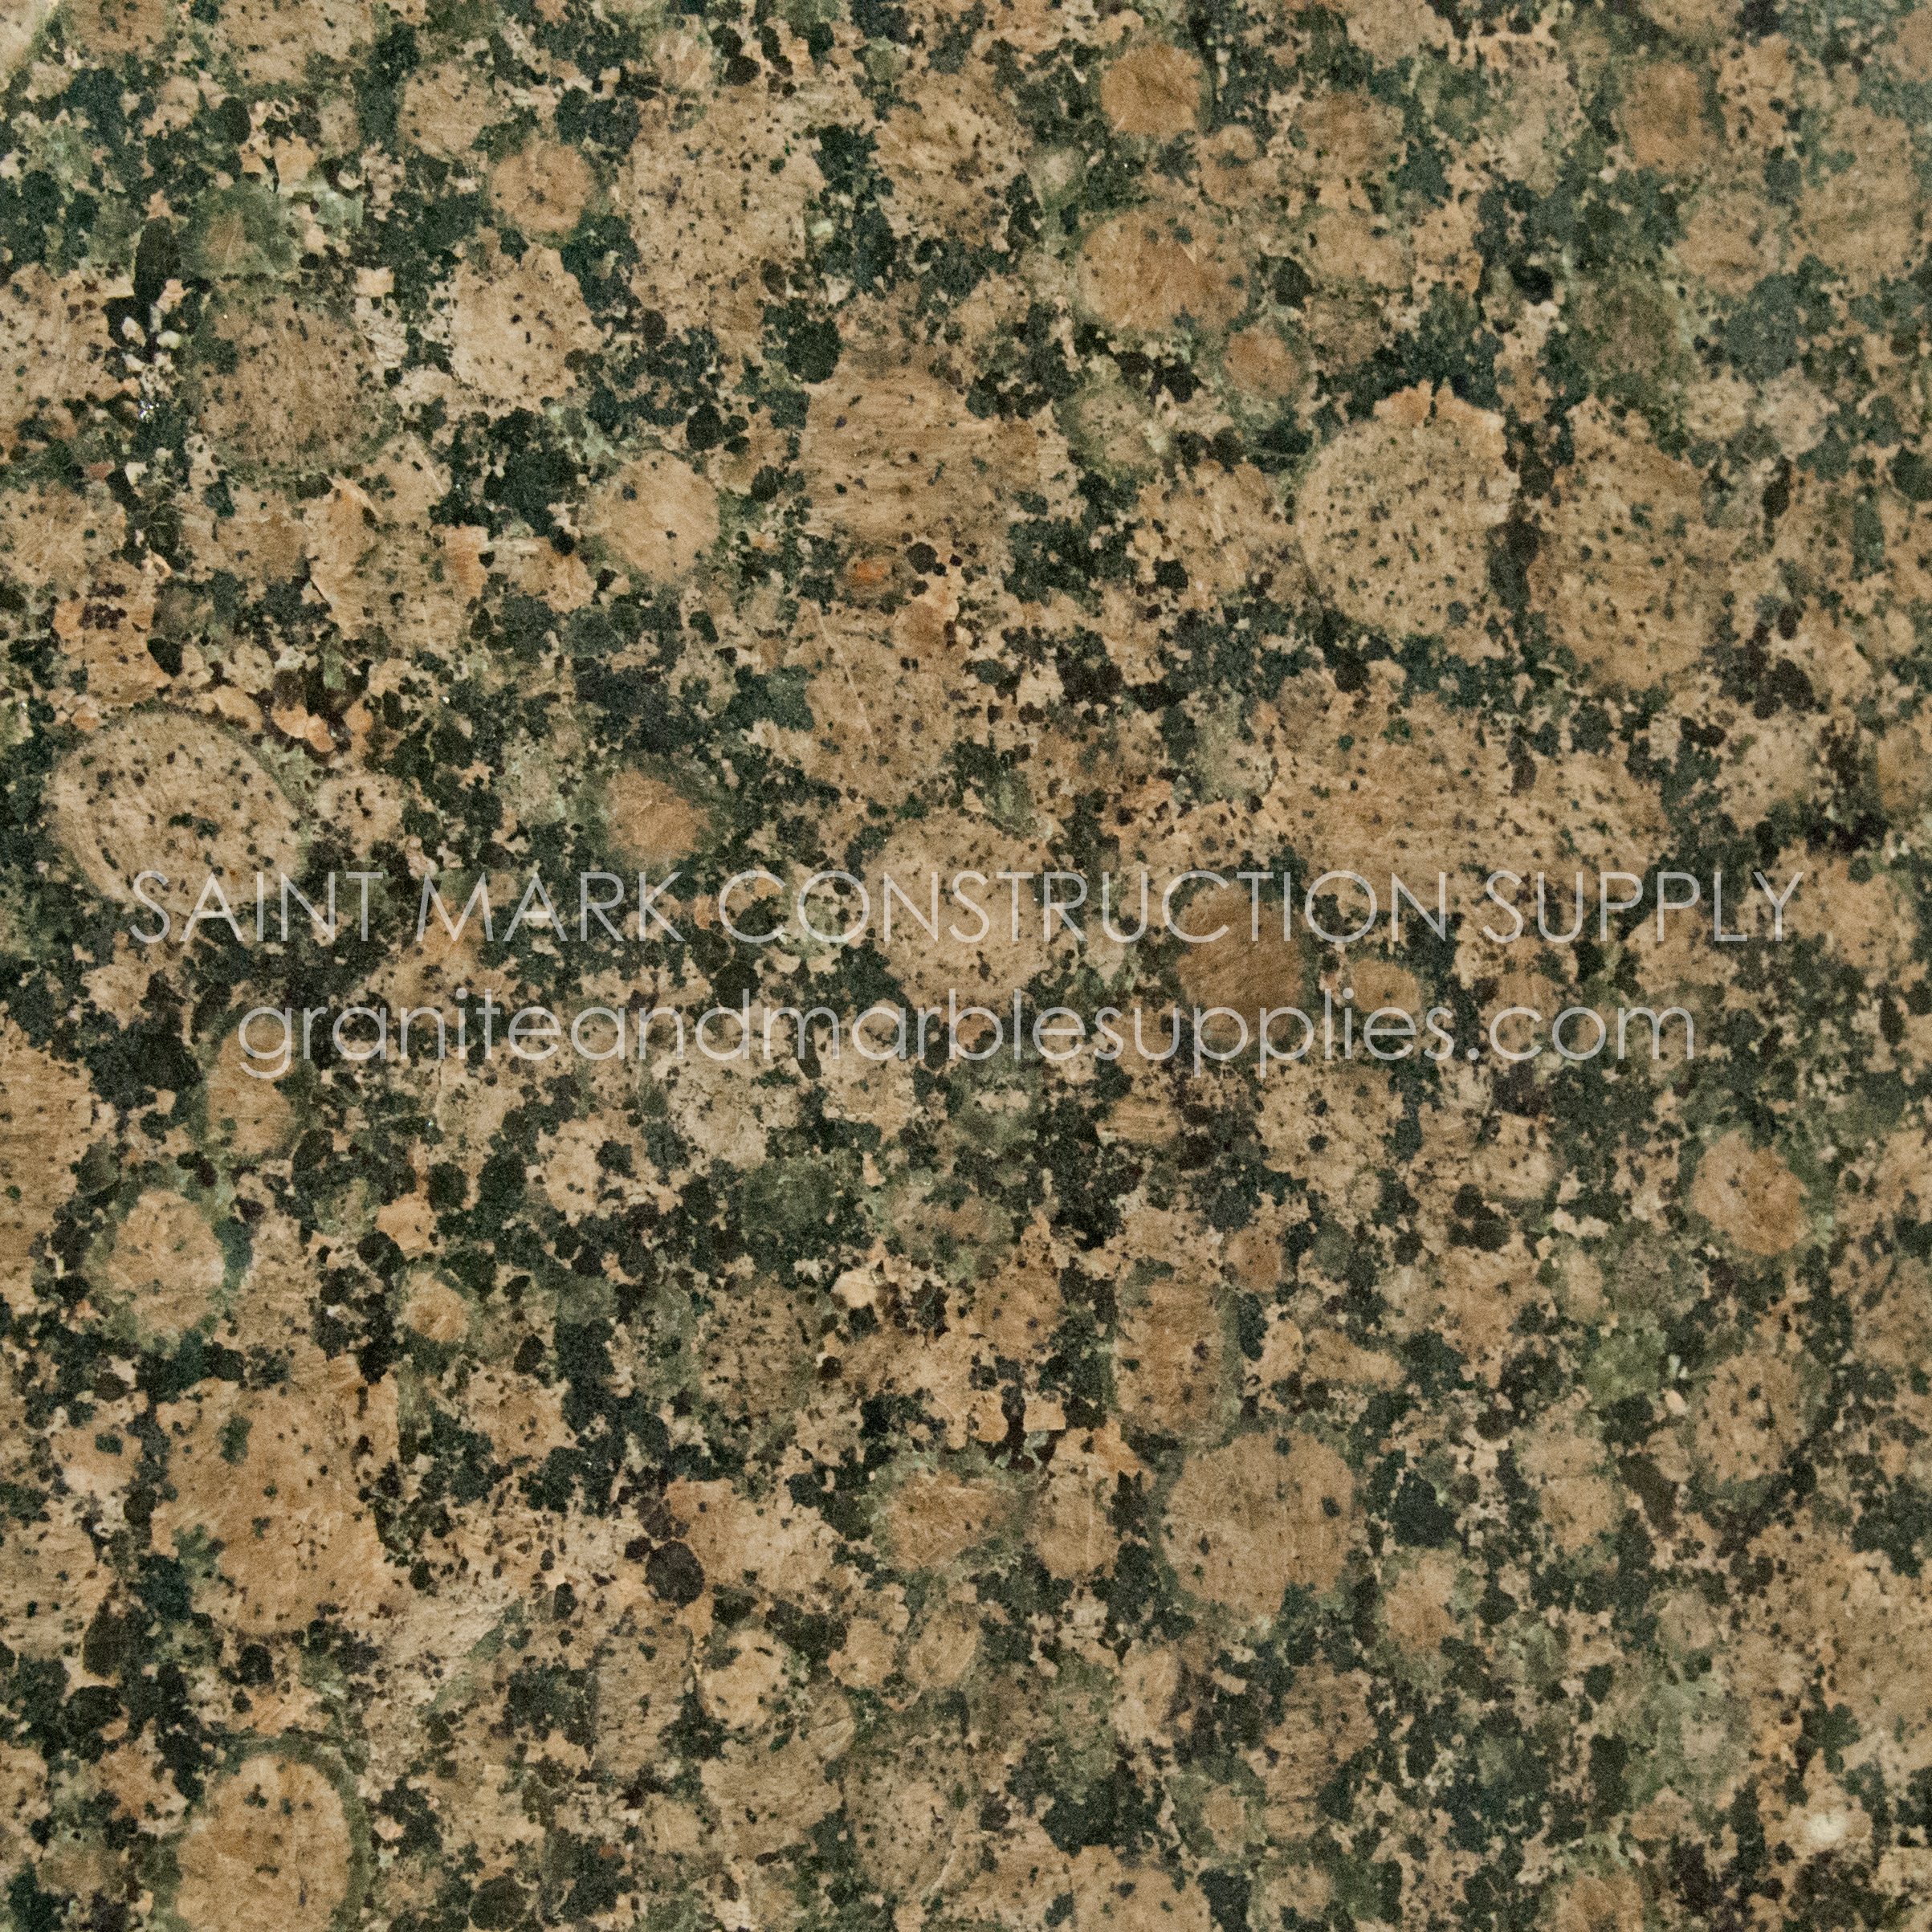 Saint Mark Construction Supply Supplier Of Granite